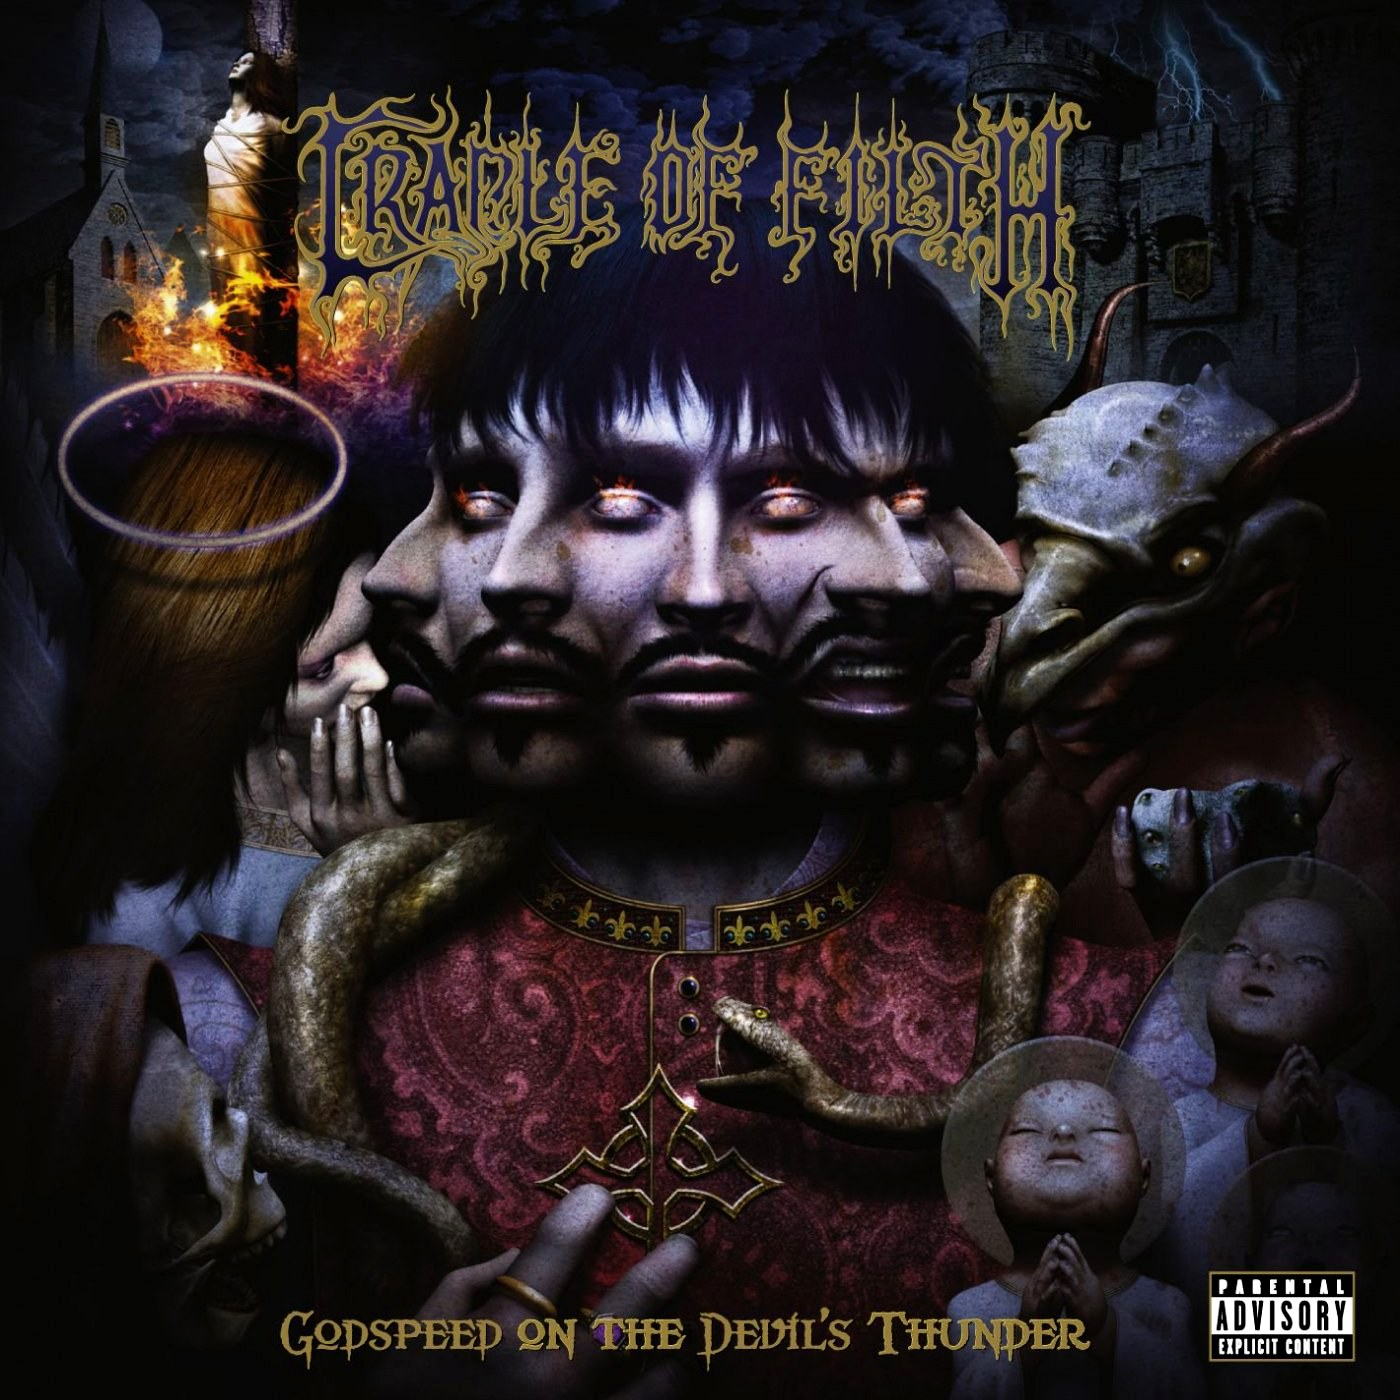 Review for Cradle of Filth - Godspeed on the Devil's Thunder